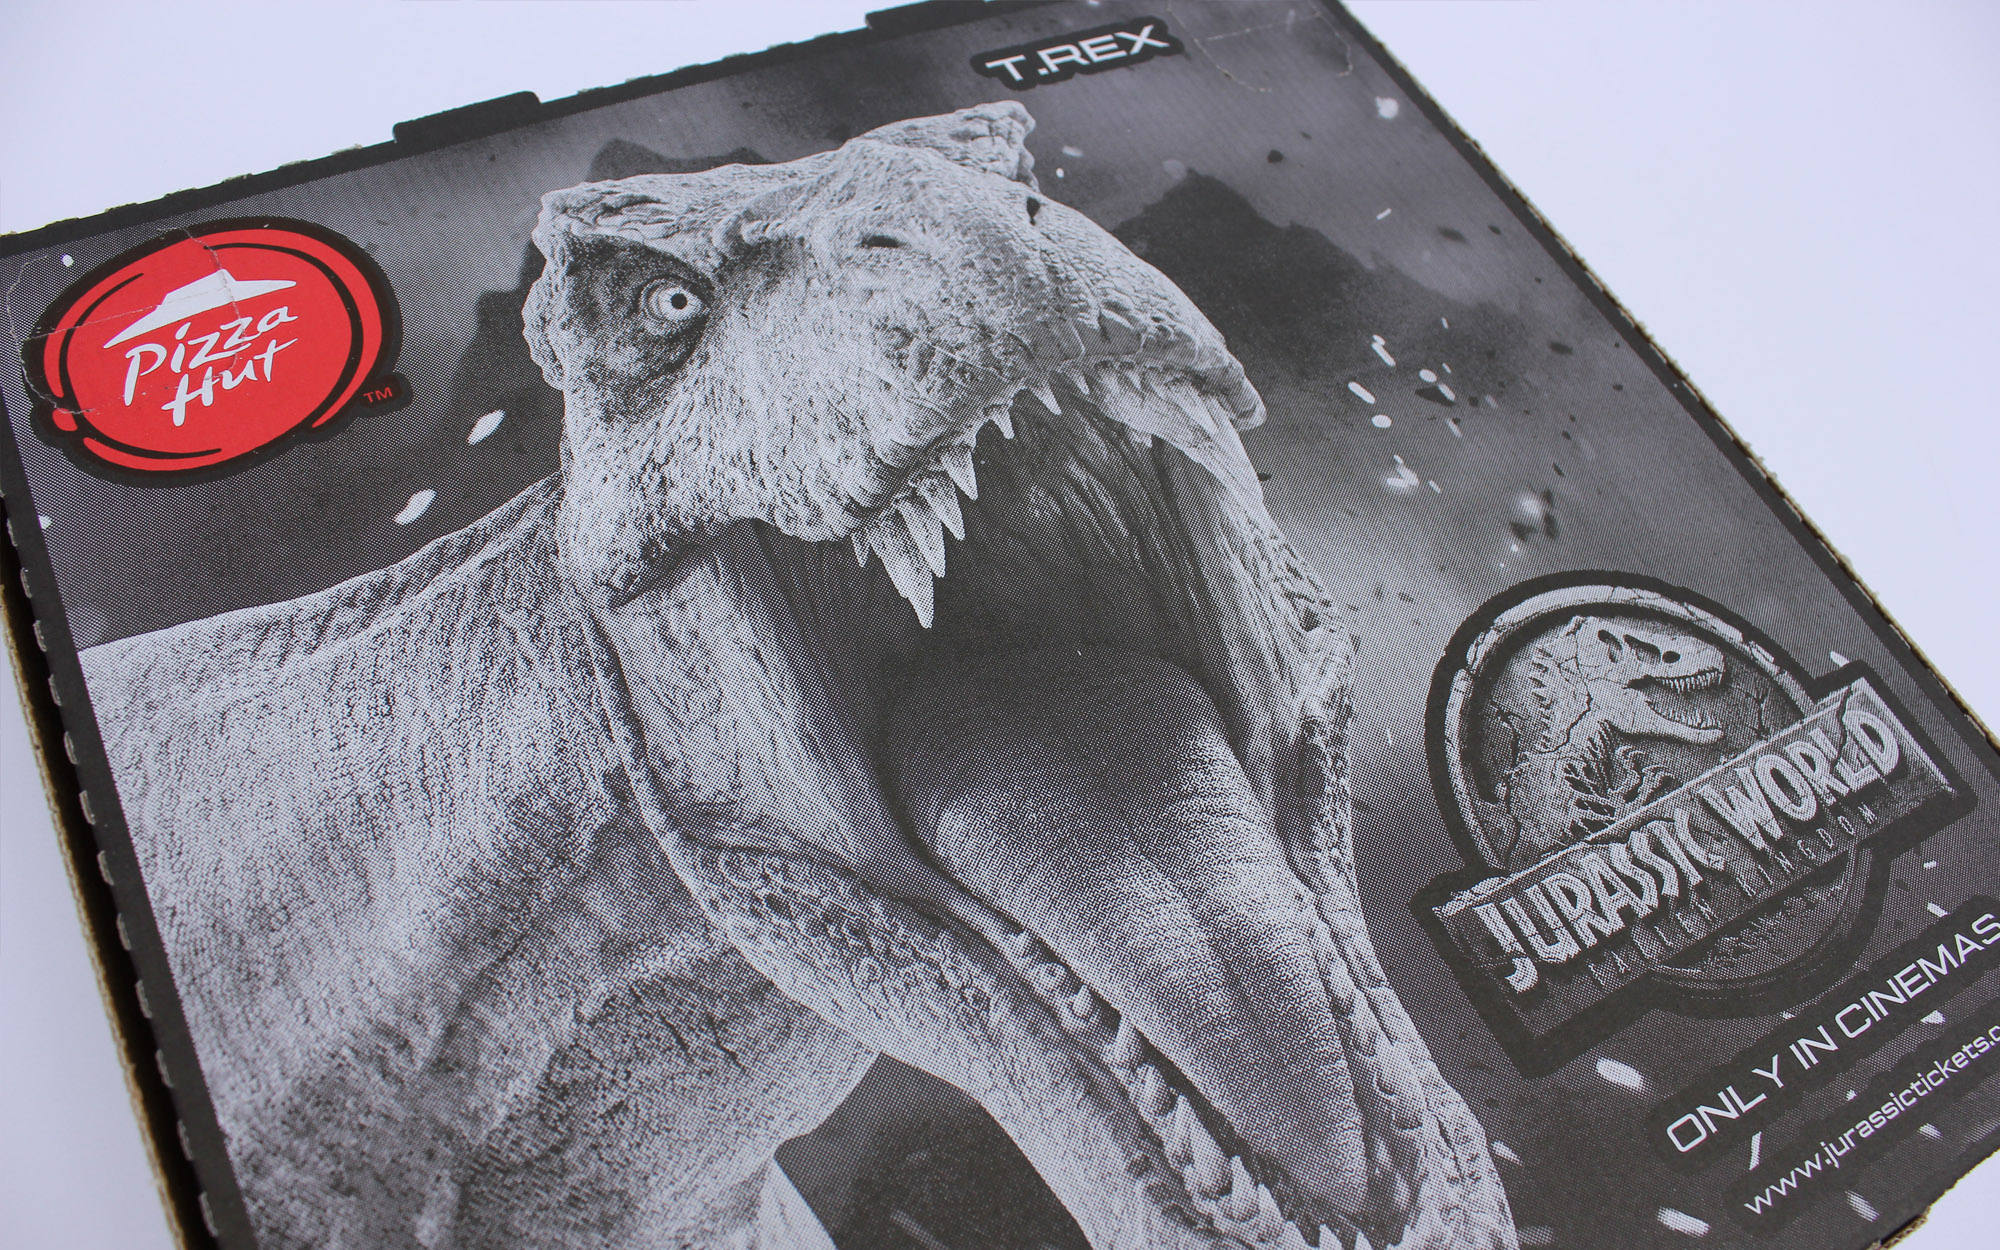 matthew_pomorski_graphic_designer_pizza_box_artwork_pizza_hut_jurassic_world_fallen_kingdom_promotion_t_rex